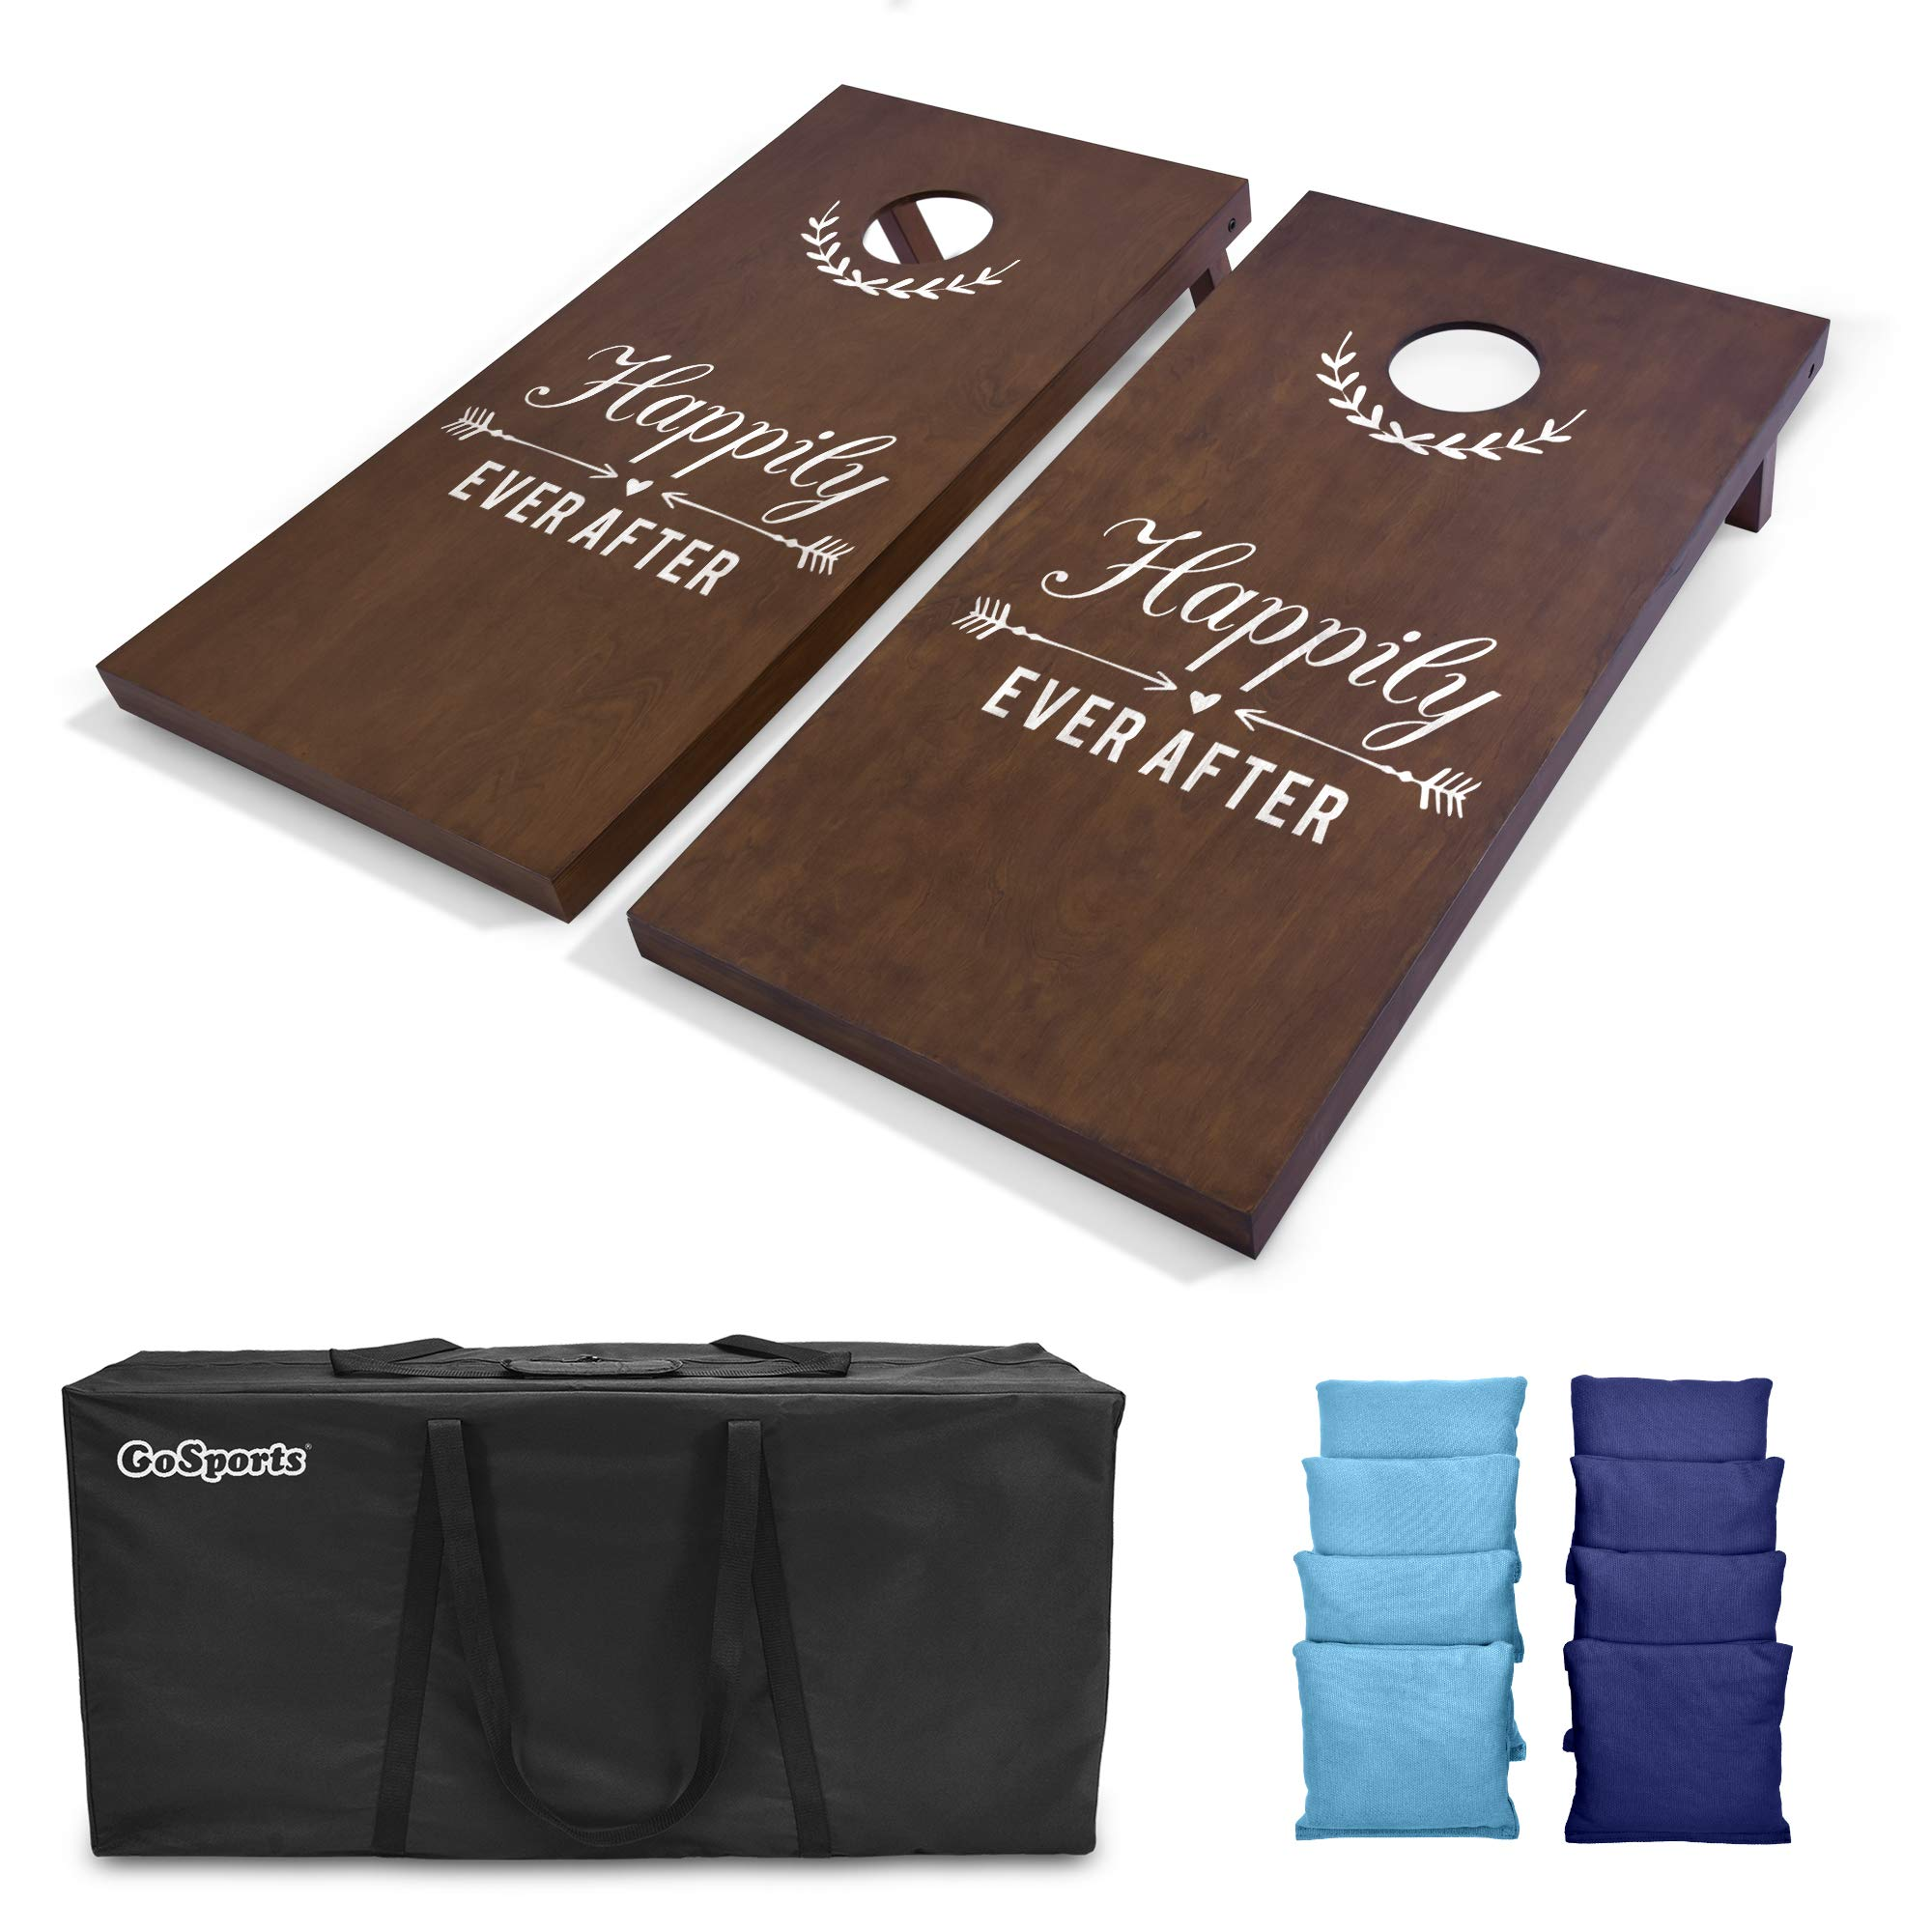 GoSports Wedding Cornhole Set   Regulation 4'x2' Size  Solid Stained Wood with Carrying Case and Bean Bags (Choose Your Colors) - Match The Wedding Theme! by GoSports